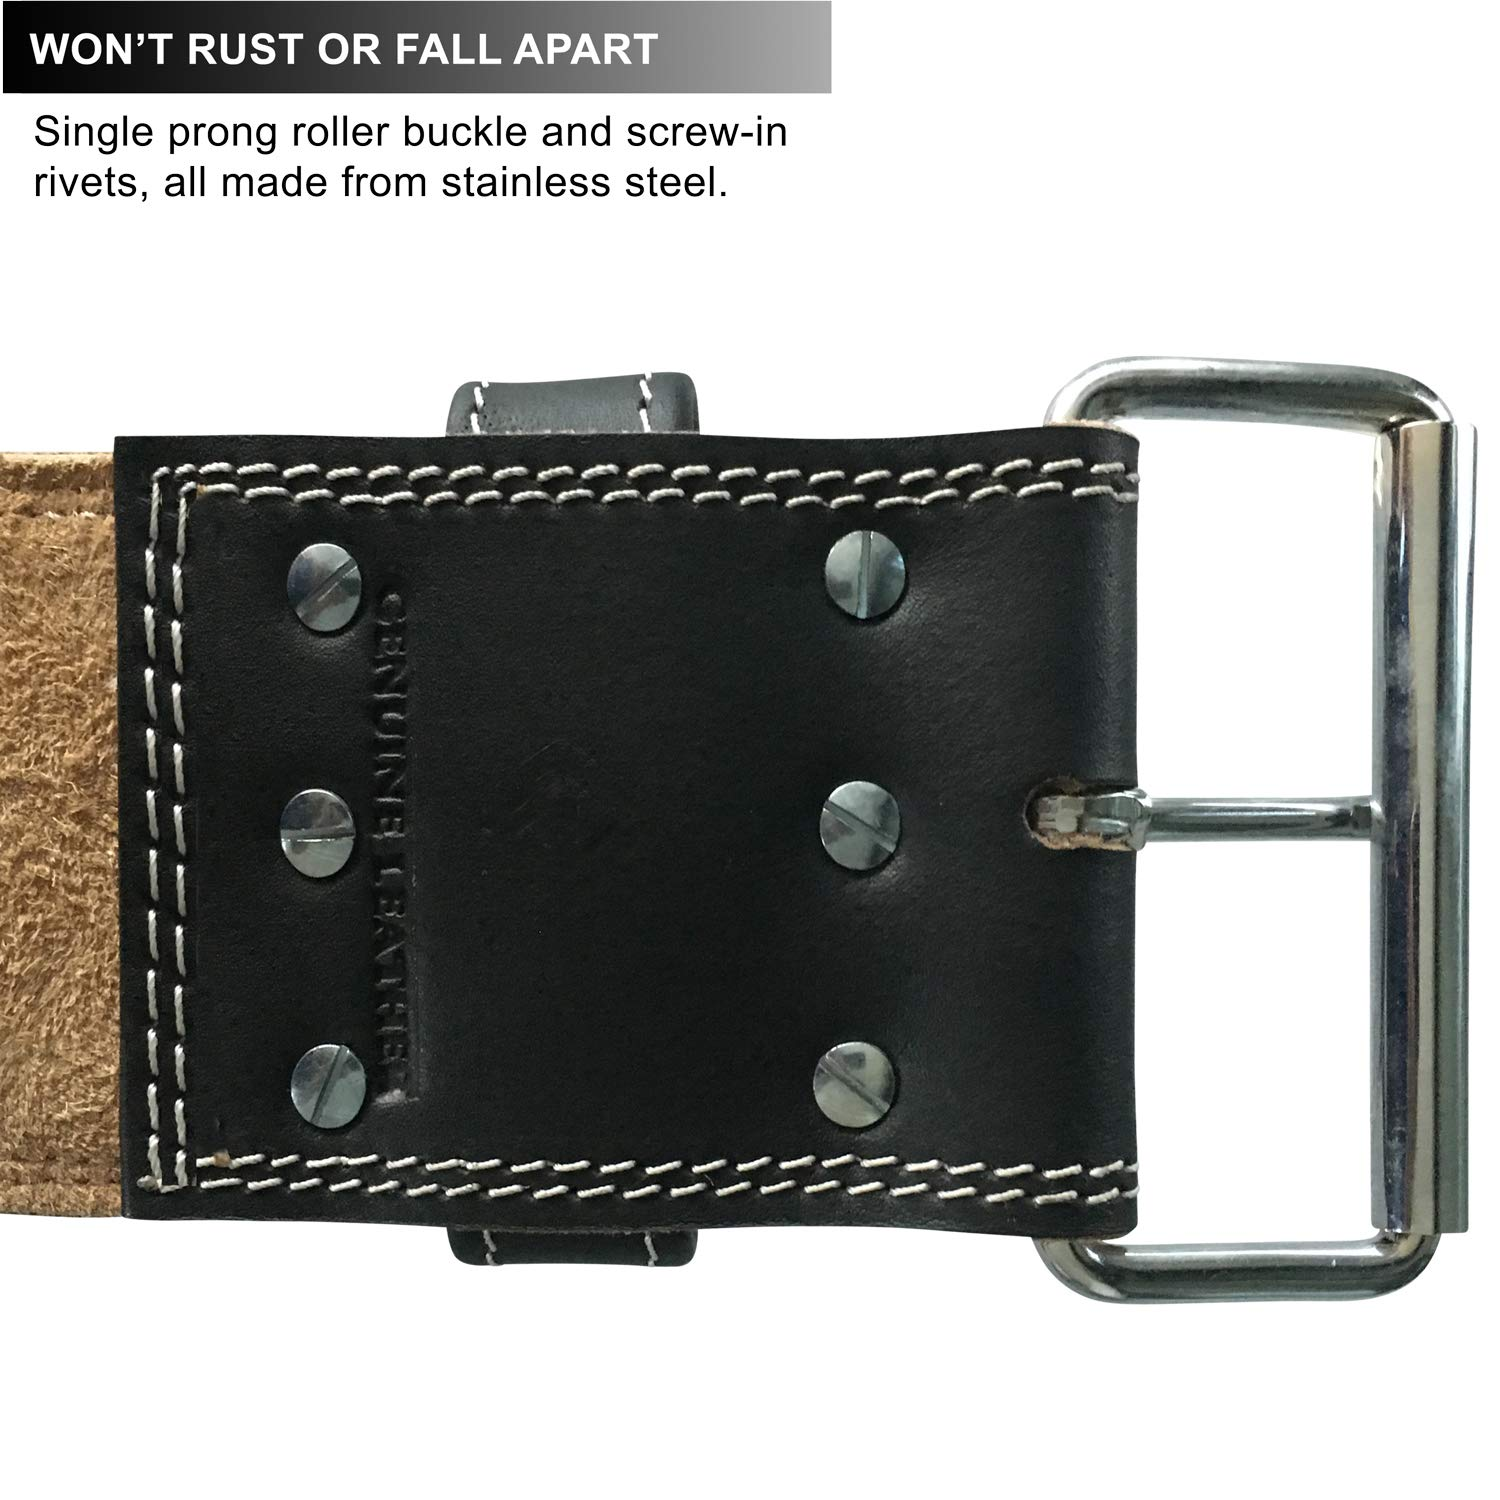 Steel Sweat Weight Lifting Belt - 4 Inches Wide by 10mm - Single Prong Powerlifting Belt That's Heavy Duty - Genuine Cowhide Leather - X-Large Texus by Steel Sweat (Image #9)